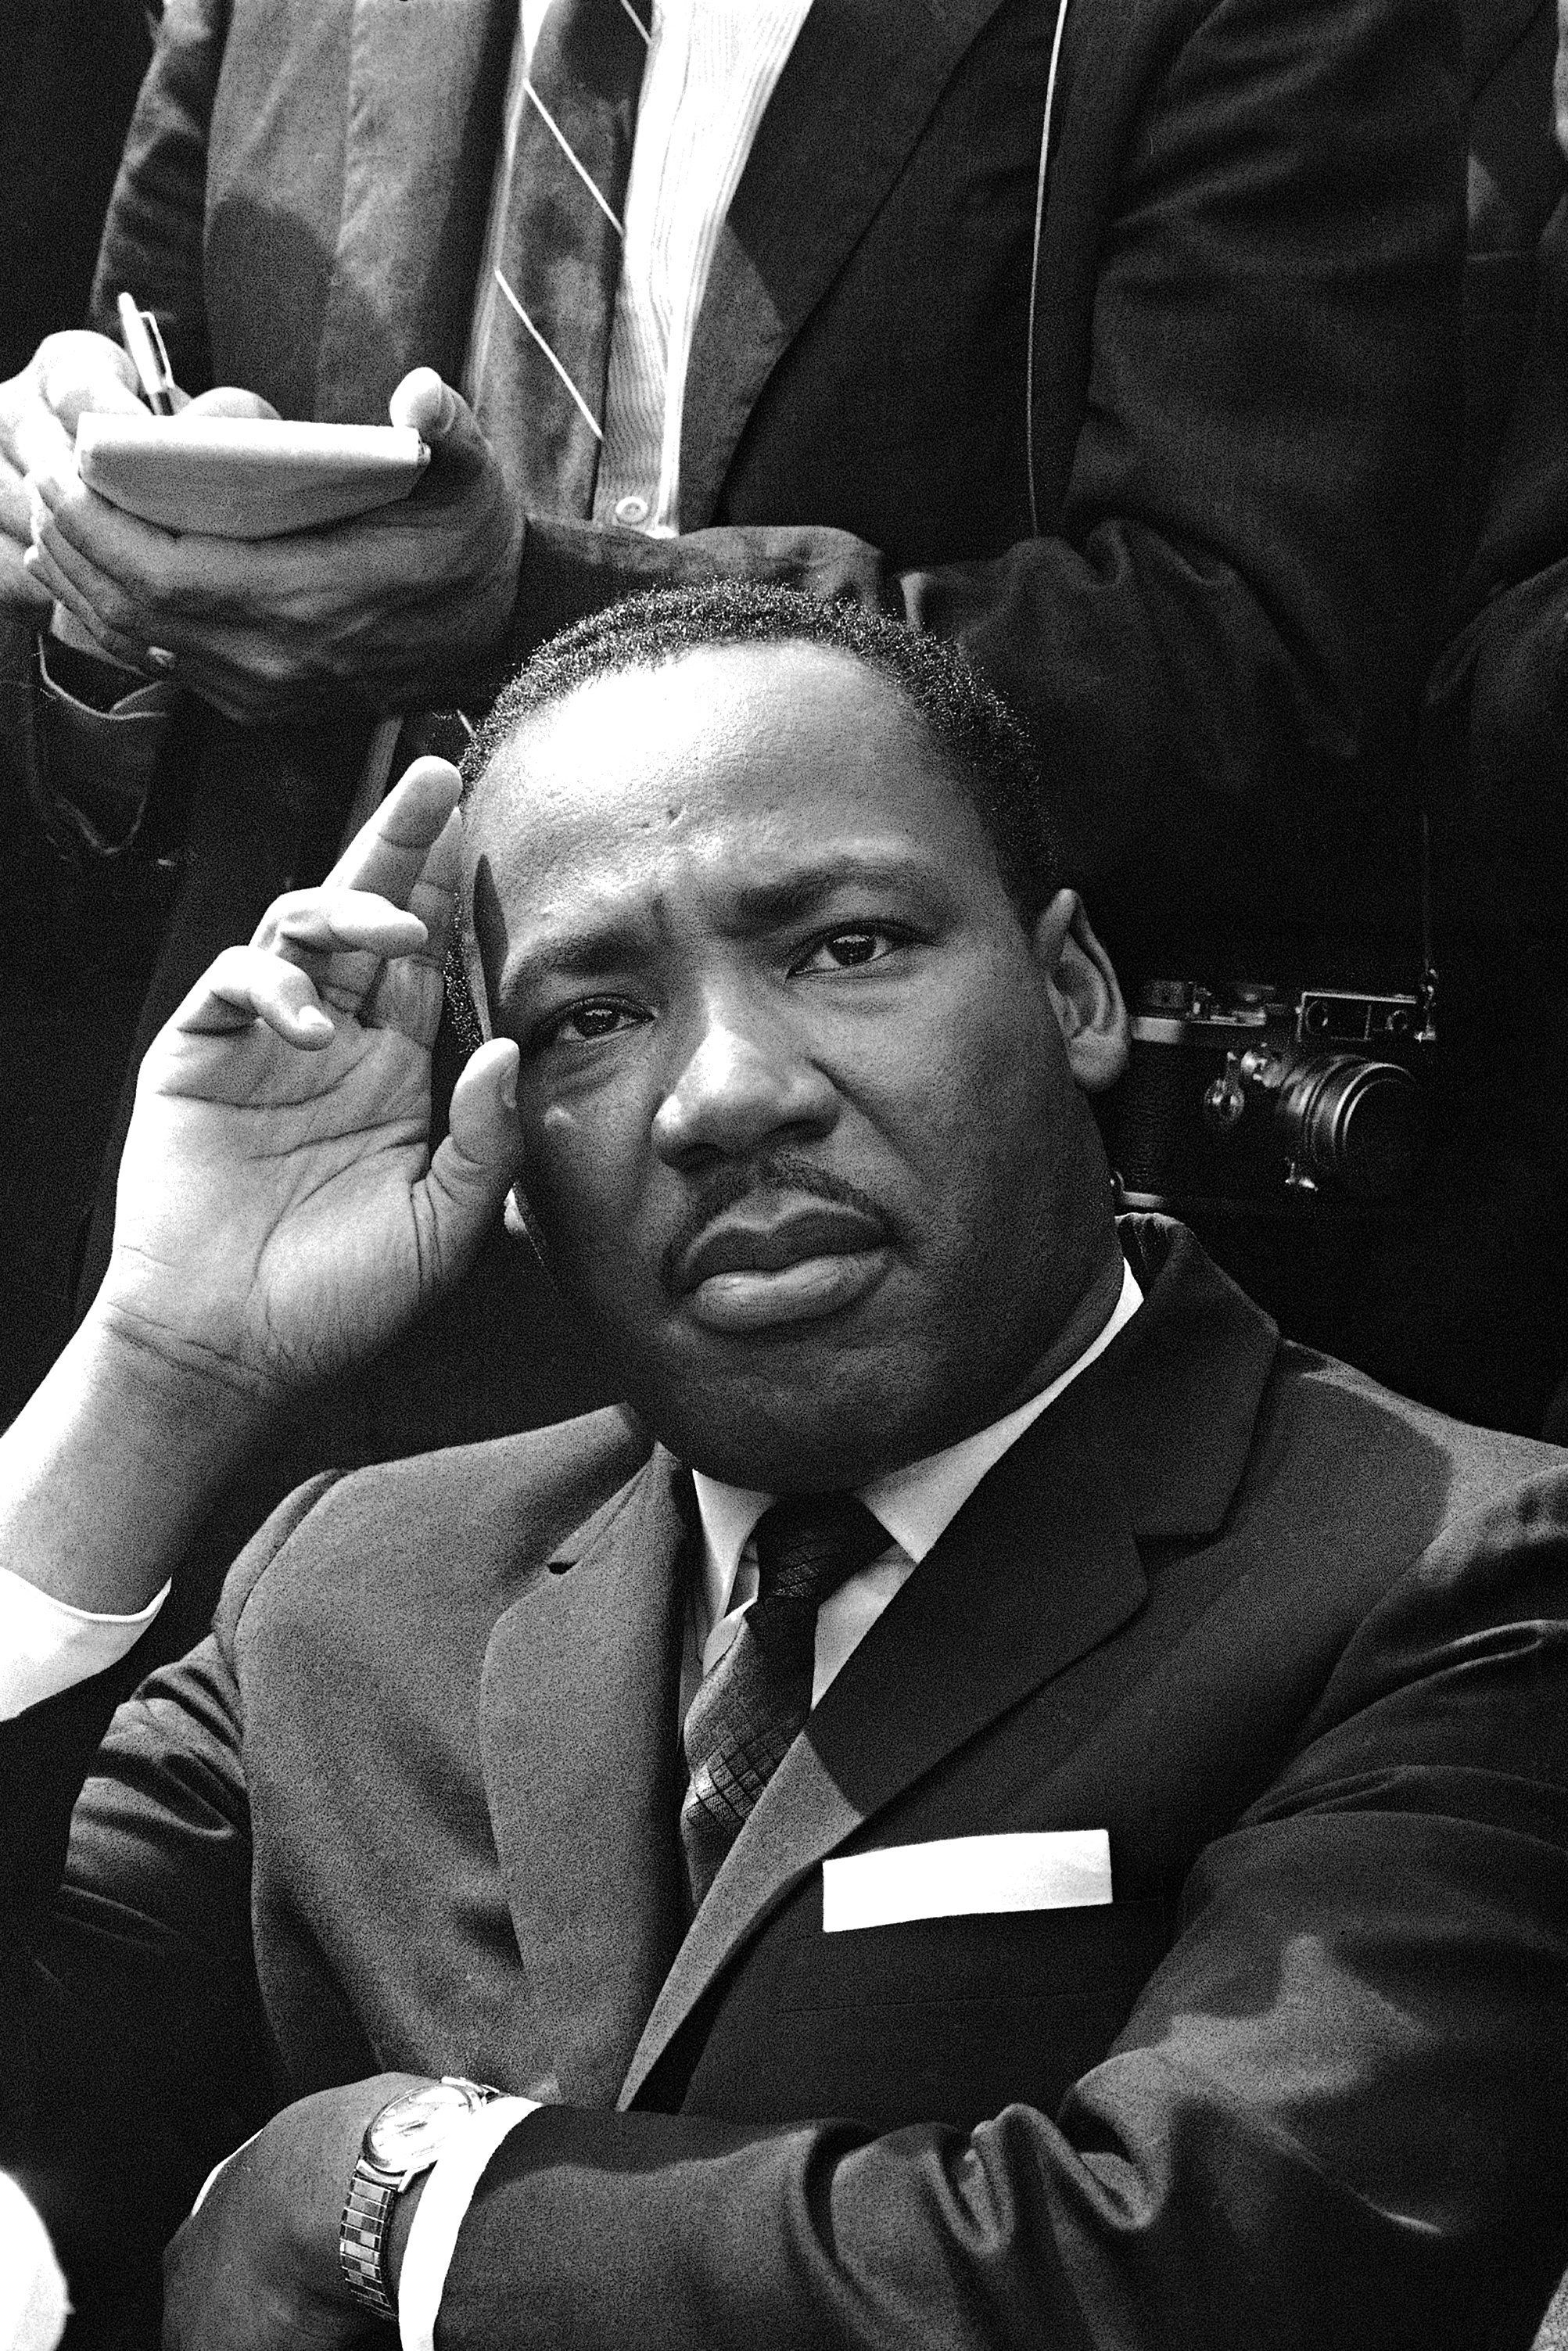 martin luter king jr About martin luther king jr: martin luther king, jr was one of the pivotal leaders of the american civil rights movement king was a baptist minister.